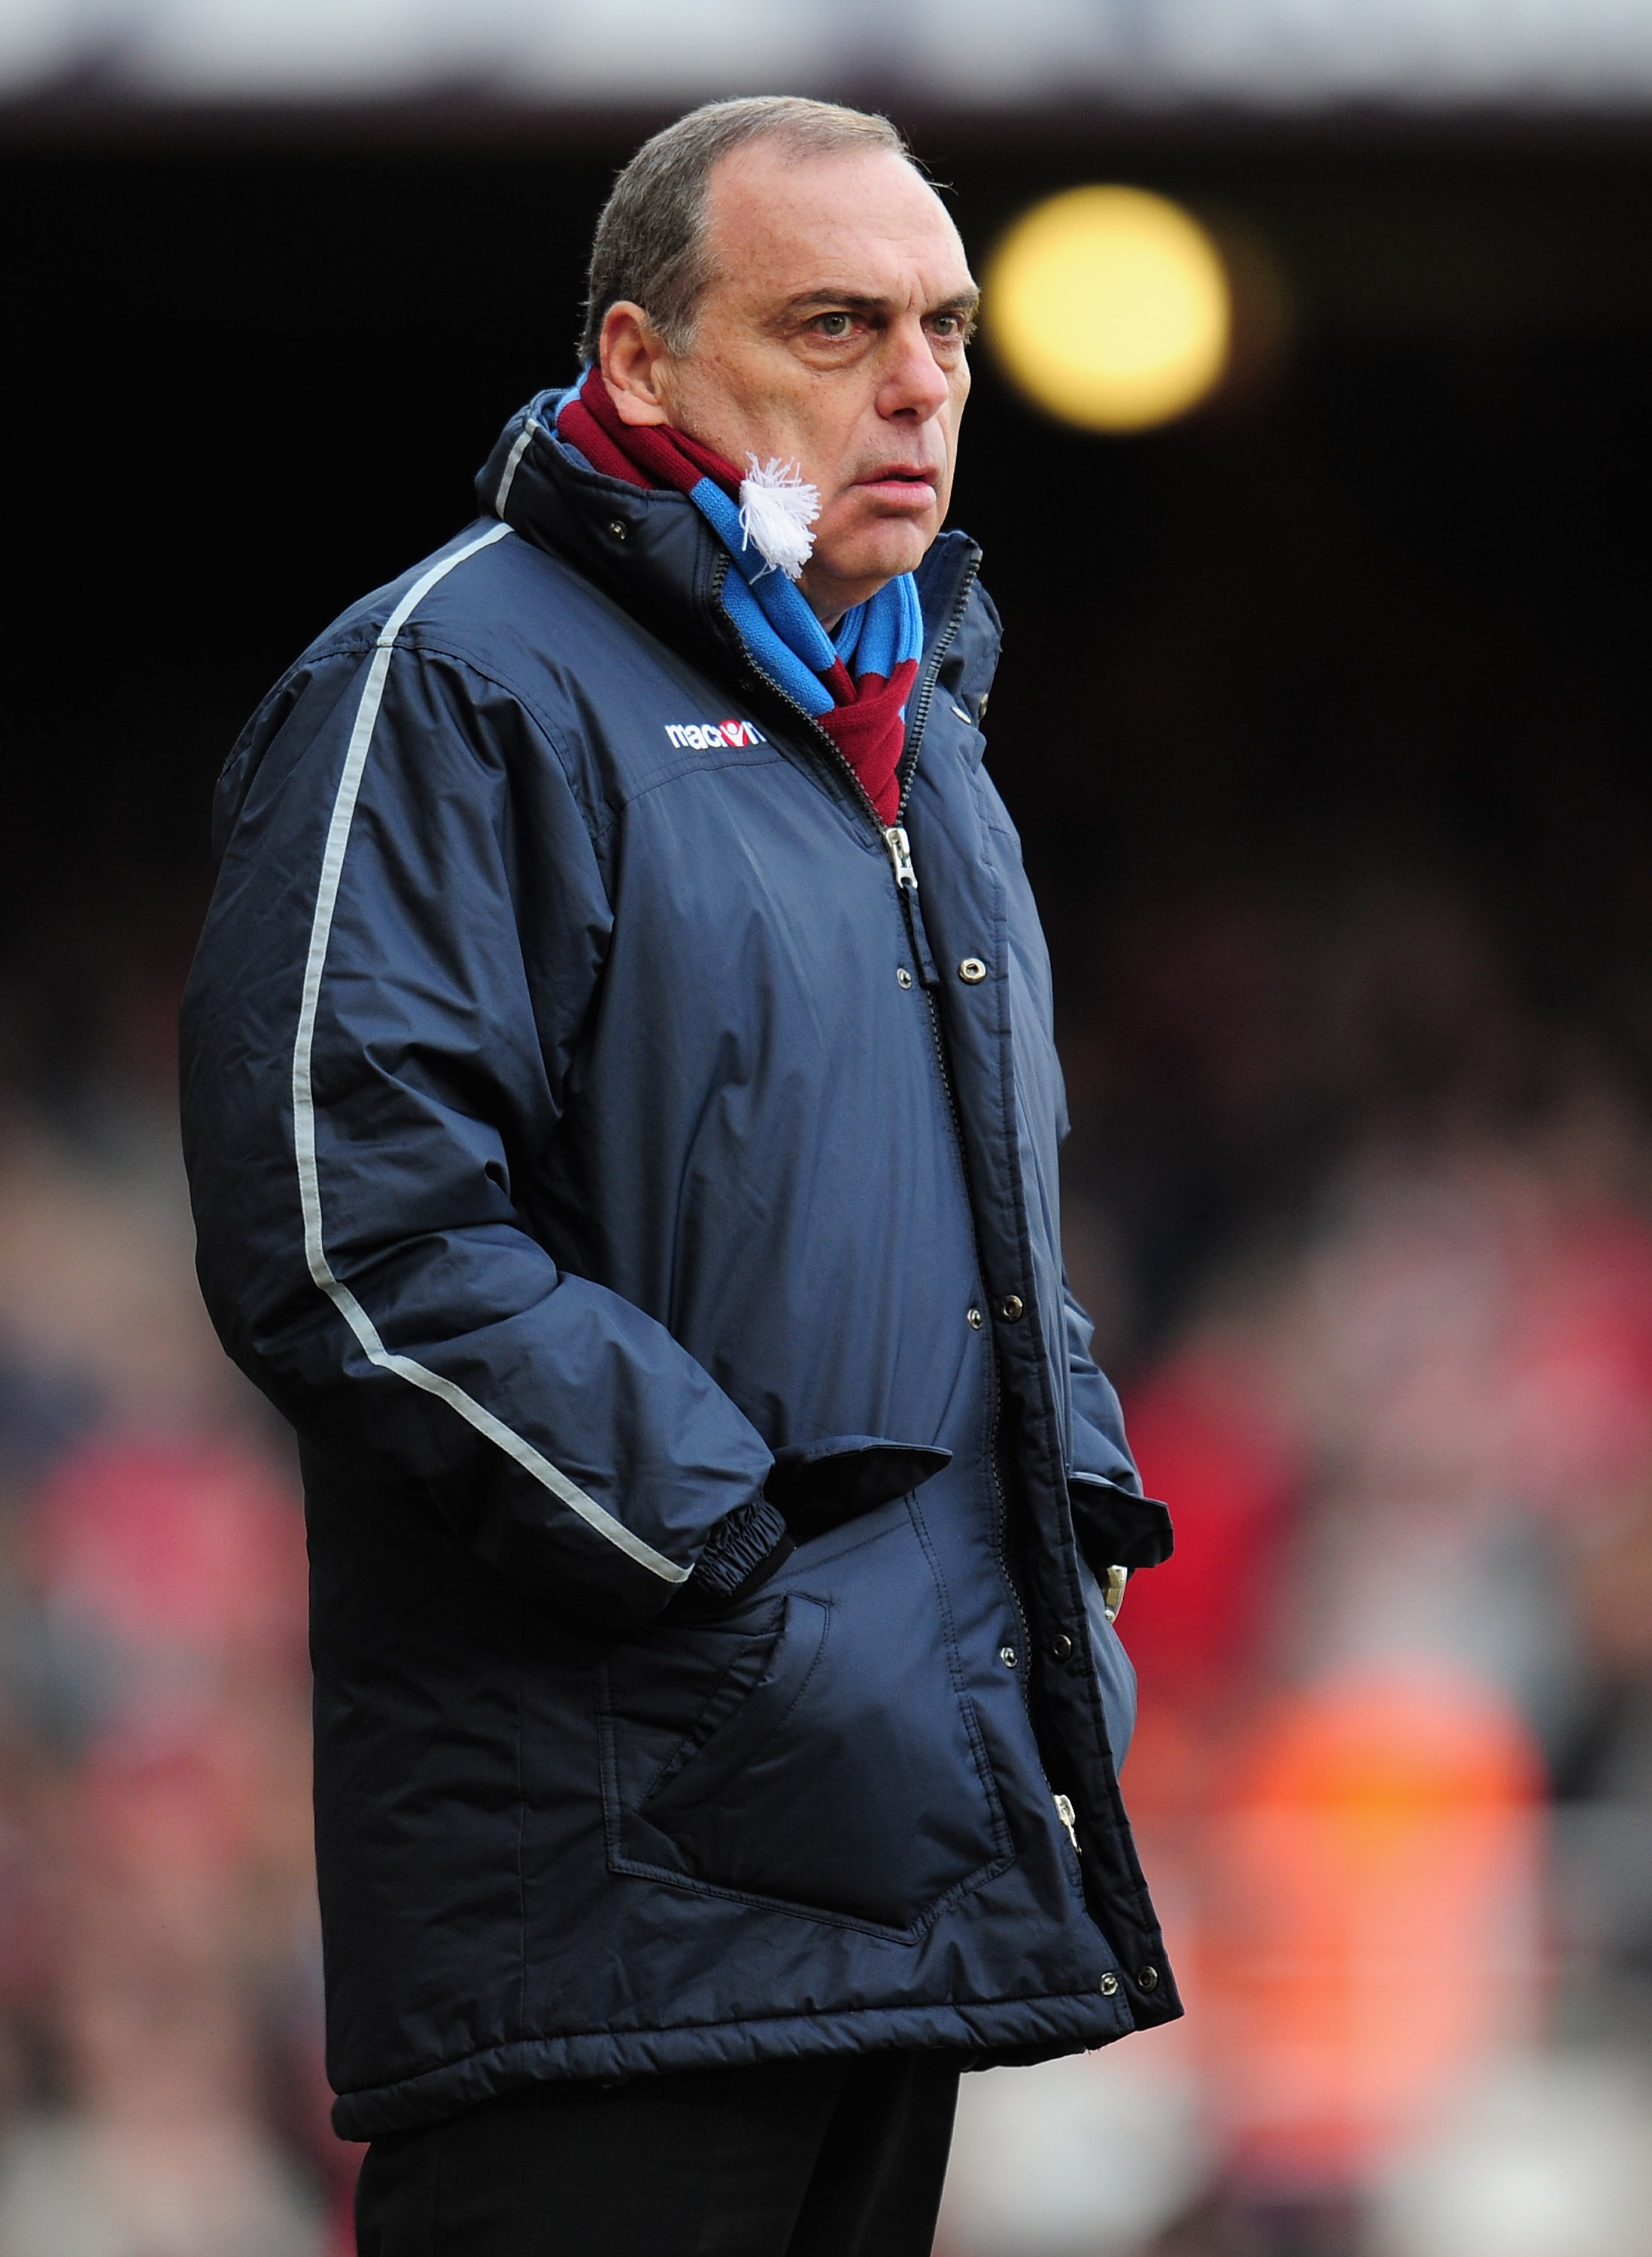 LONDON, ENGLAND - JANUARY 30:  West Ham United manager Avram Grant looks on during the FA Cup sponsored by E.O.N 4th Round match between West Ham United and Nottingham Forest at the Boleyn Ground on January 30, 2011 in London, England.  (Photo by Shaun Bo